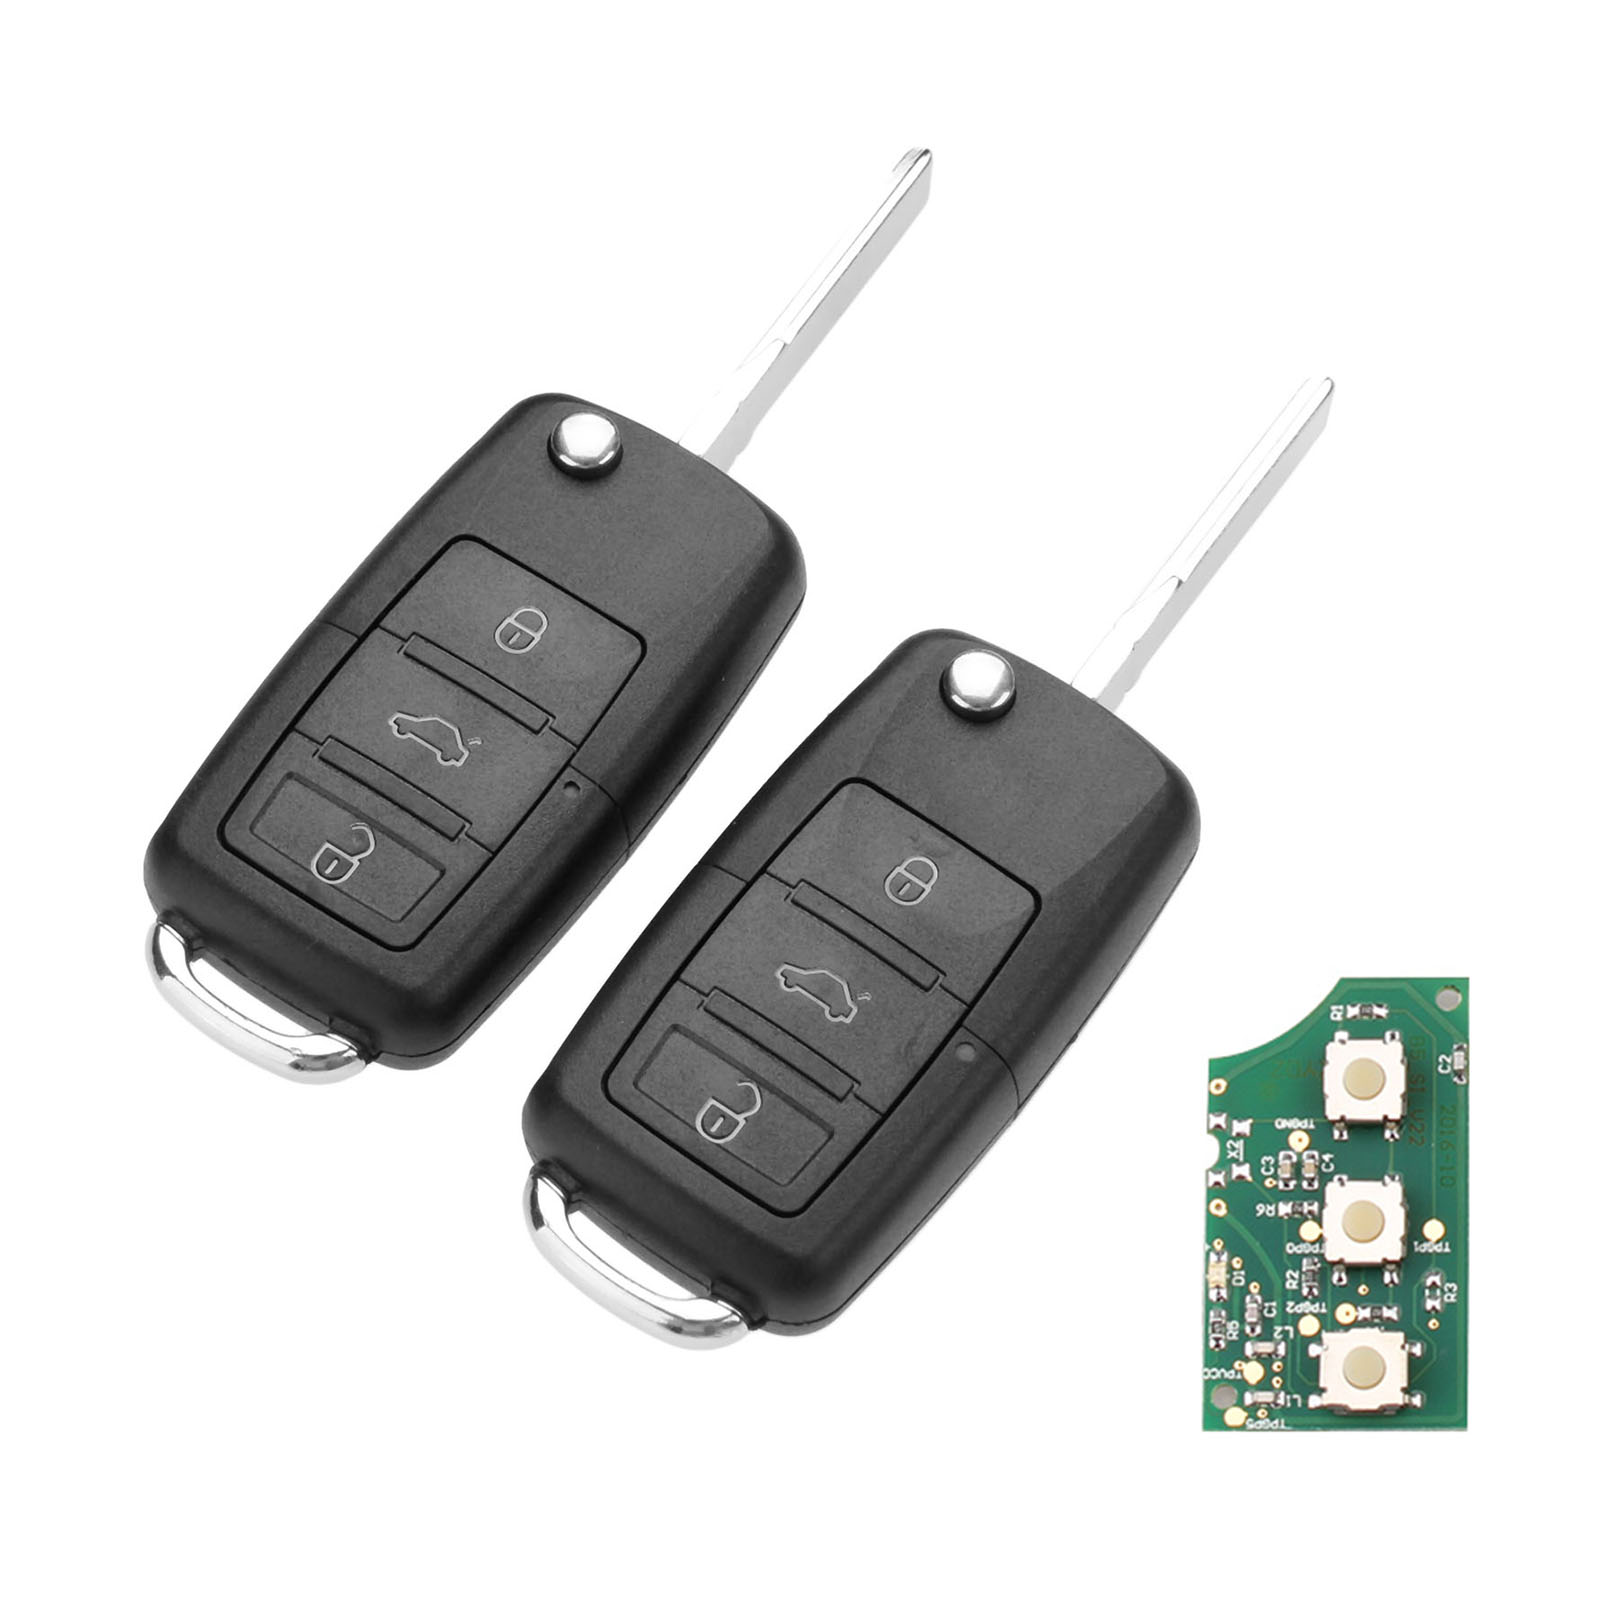 Yetaha 2pc 1J0959753AH Car Smart Remote Key 3 Button 48Chip Fit For Volkswagen Beetle Golf Passat Bora Polo Skoda Fabia Roomster